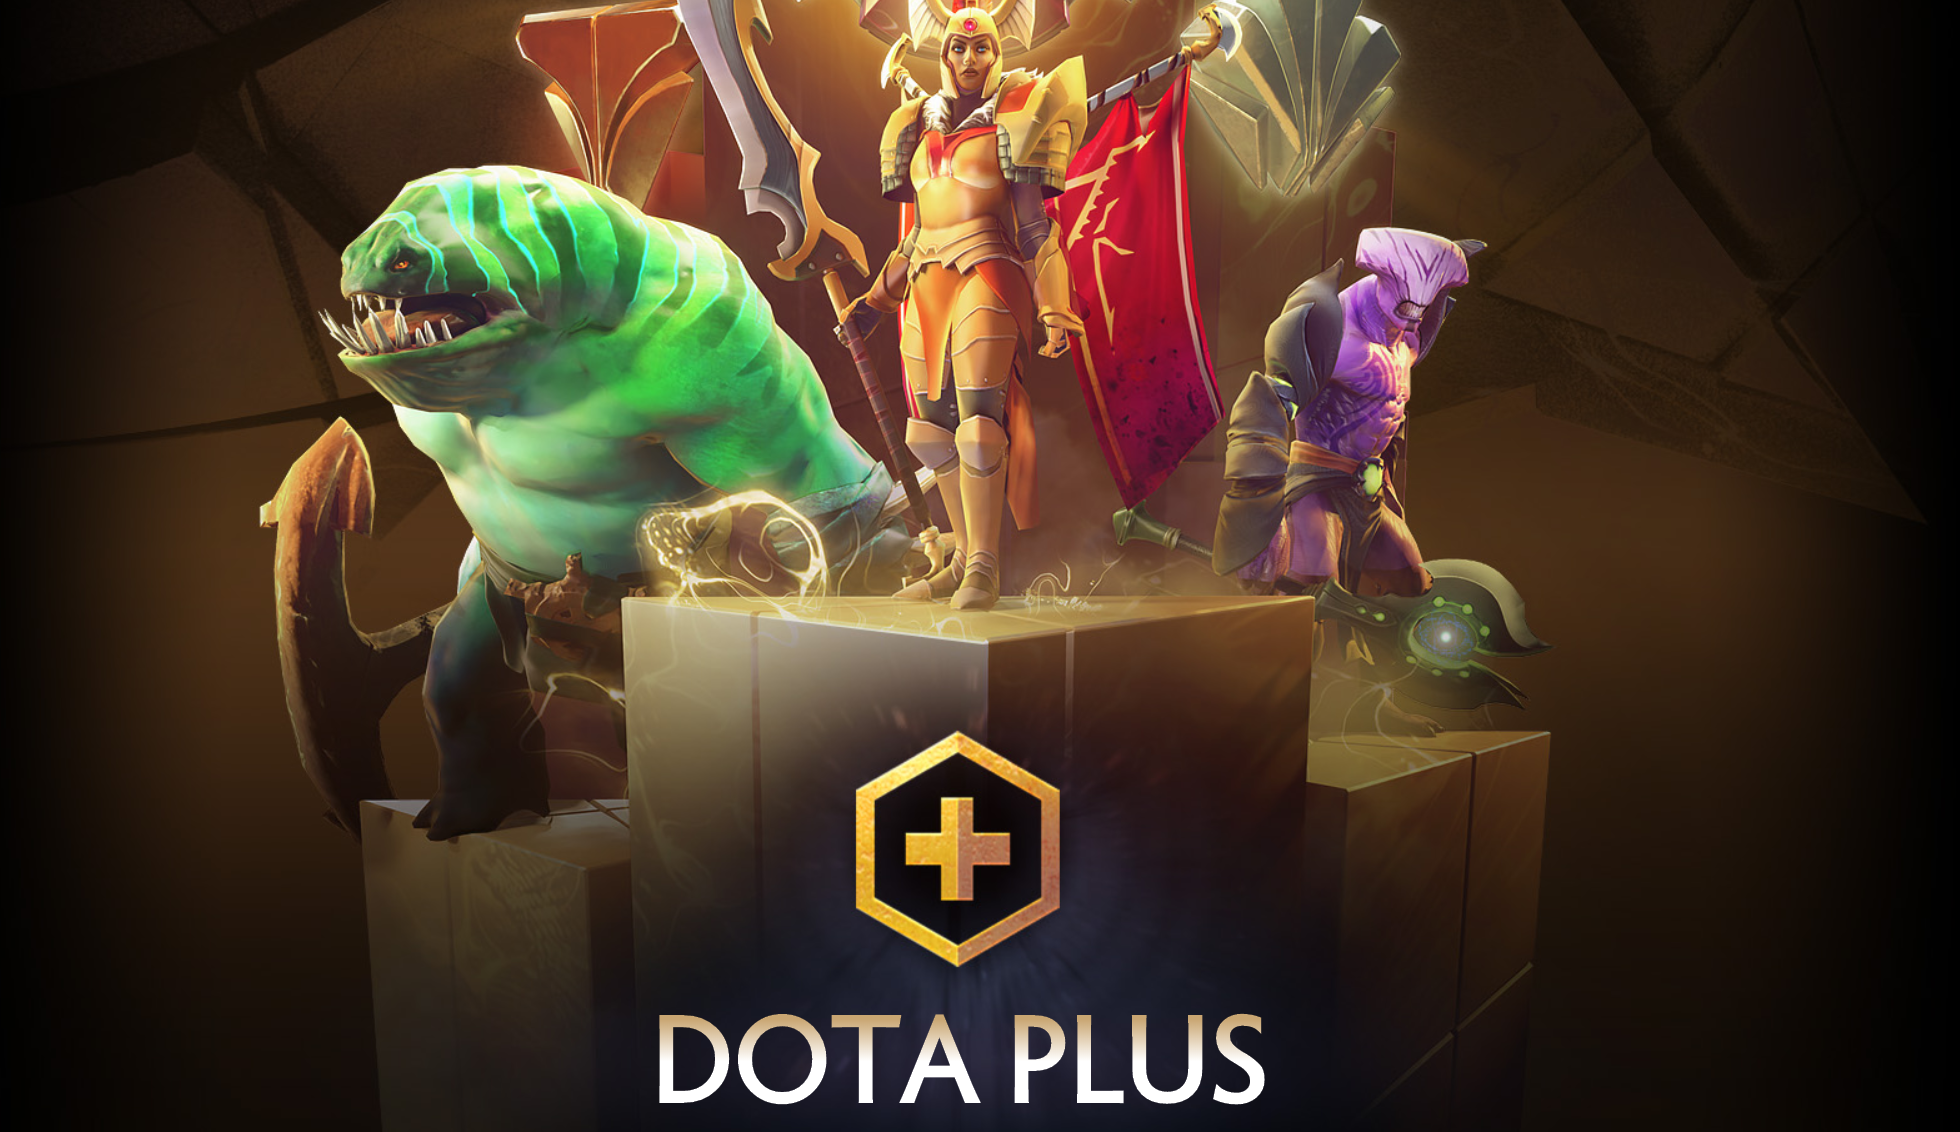 Dota 2 Immortal Items And Player Cards Released: Dota 2's New Subscription Service Offers An Unfair